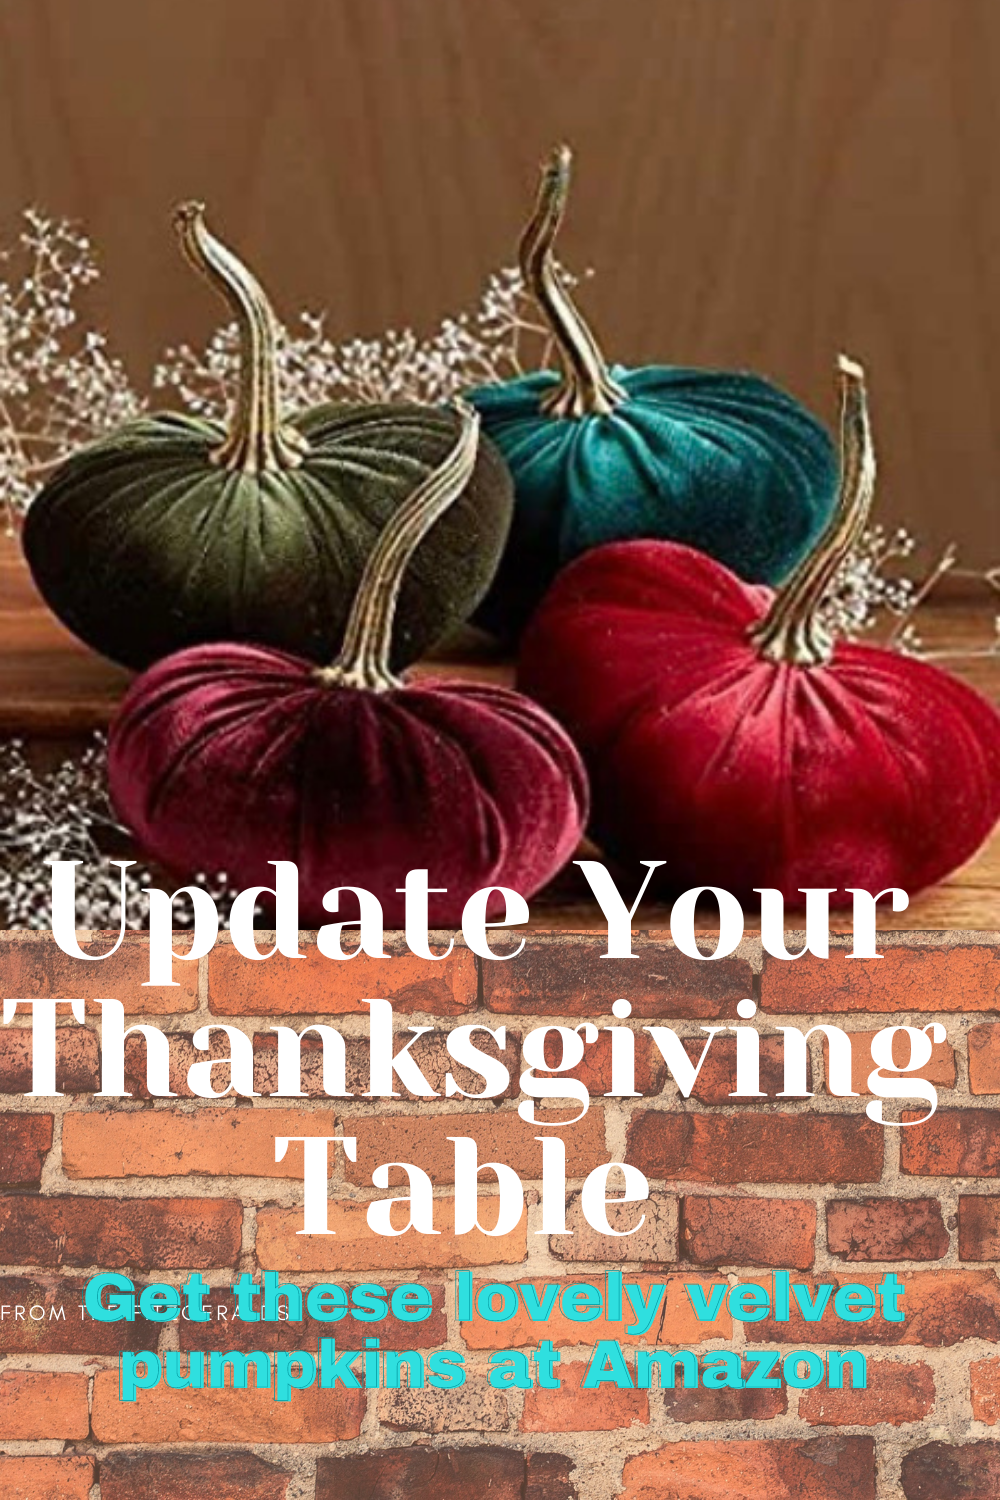 Pin By Cindy The Party Idea Girl On Trending Thanksgiving Tables In 2020 Thanksgiving Table Velvet Pumpkins Holiday Traditions